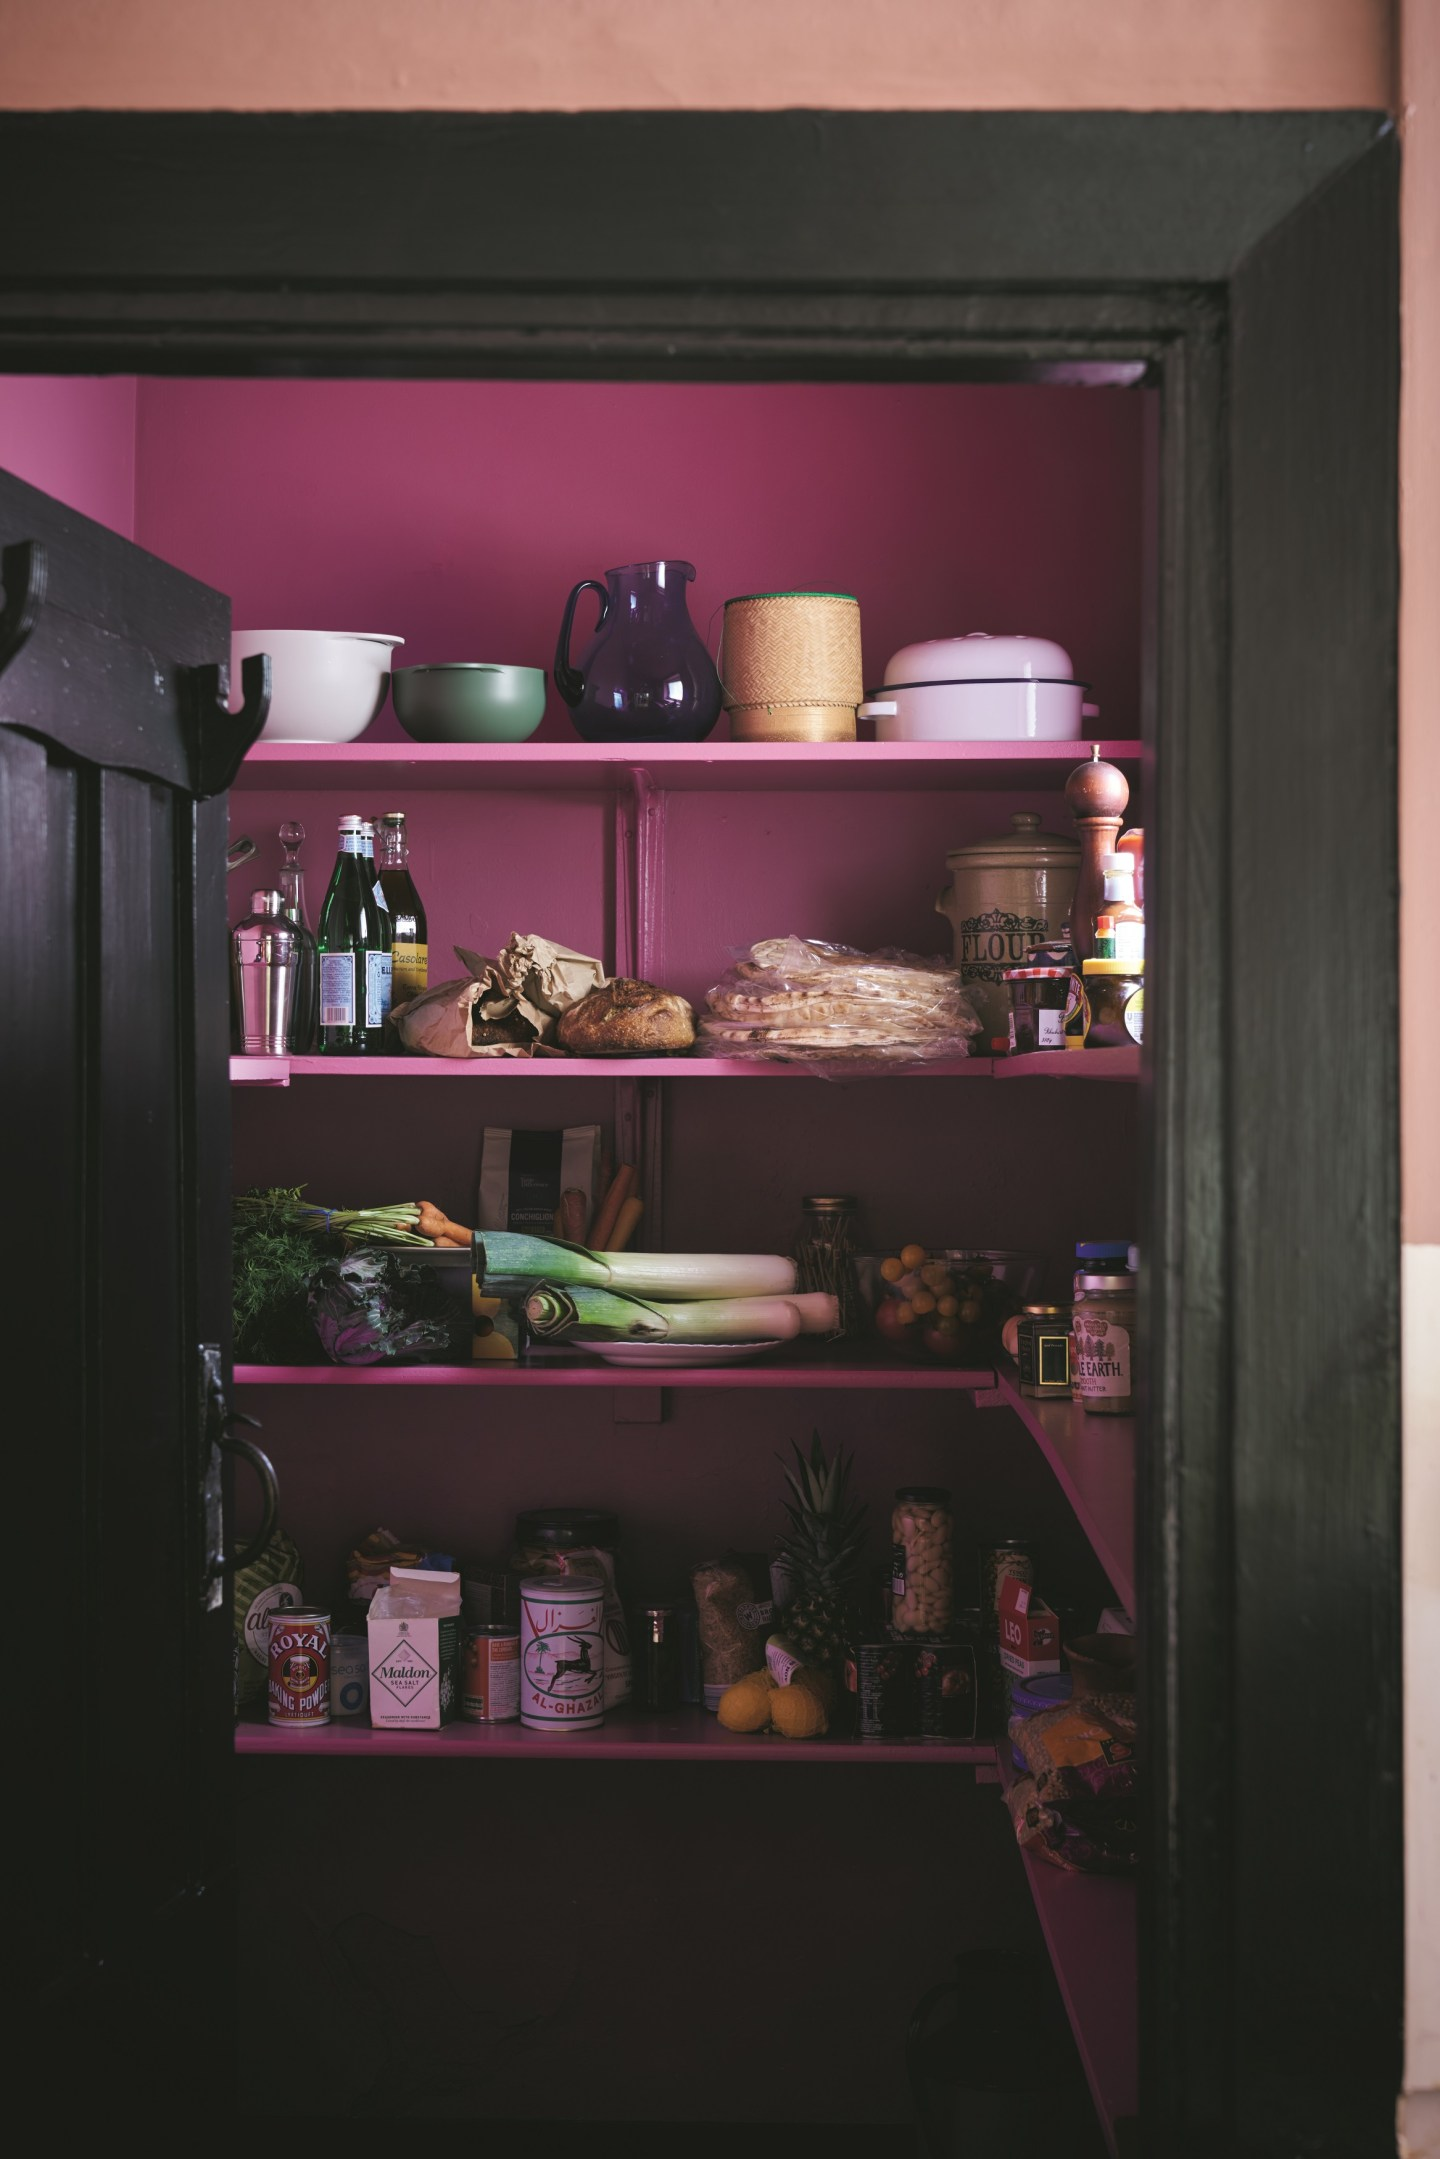 FarrowBall_3251529_FarrowBallNewColours2018.jpg-1440x2159 Paint Inspiration: 20 Colorful Rooms We Love